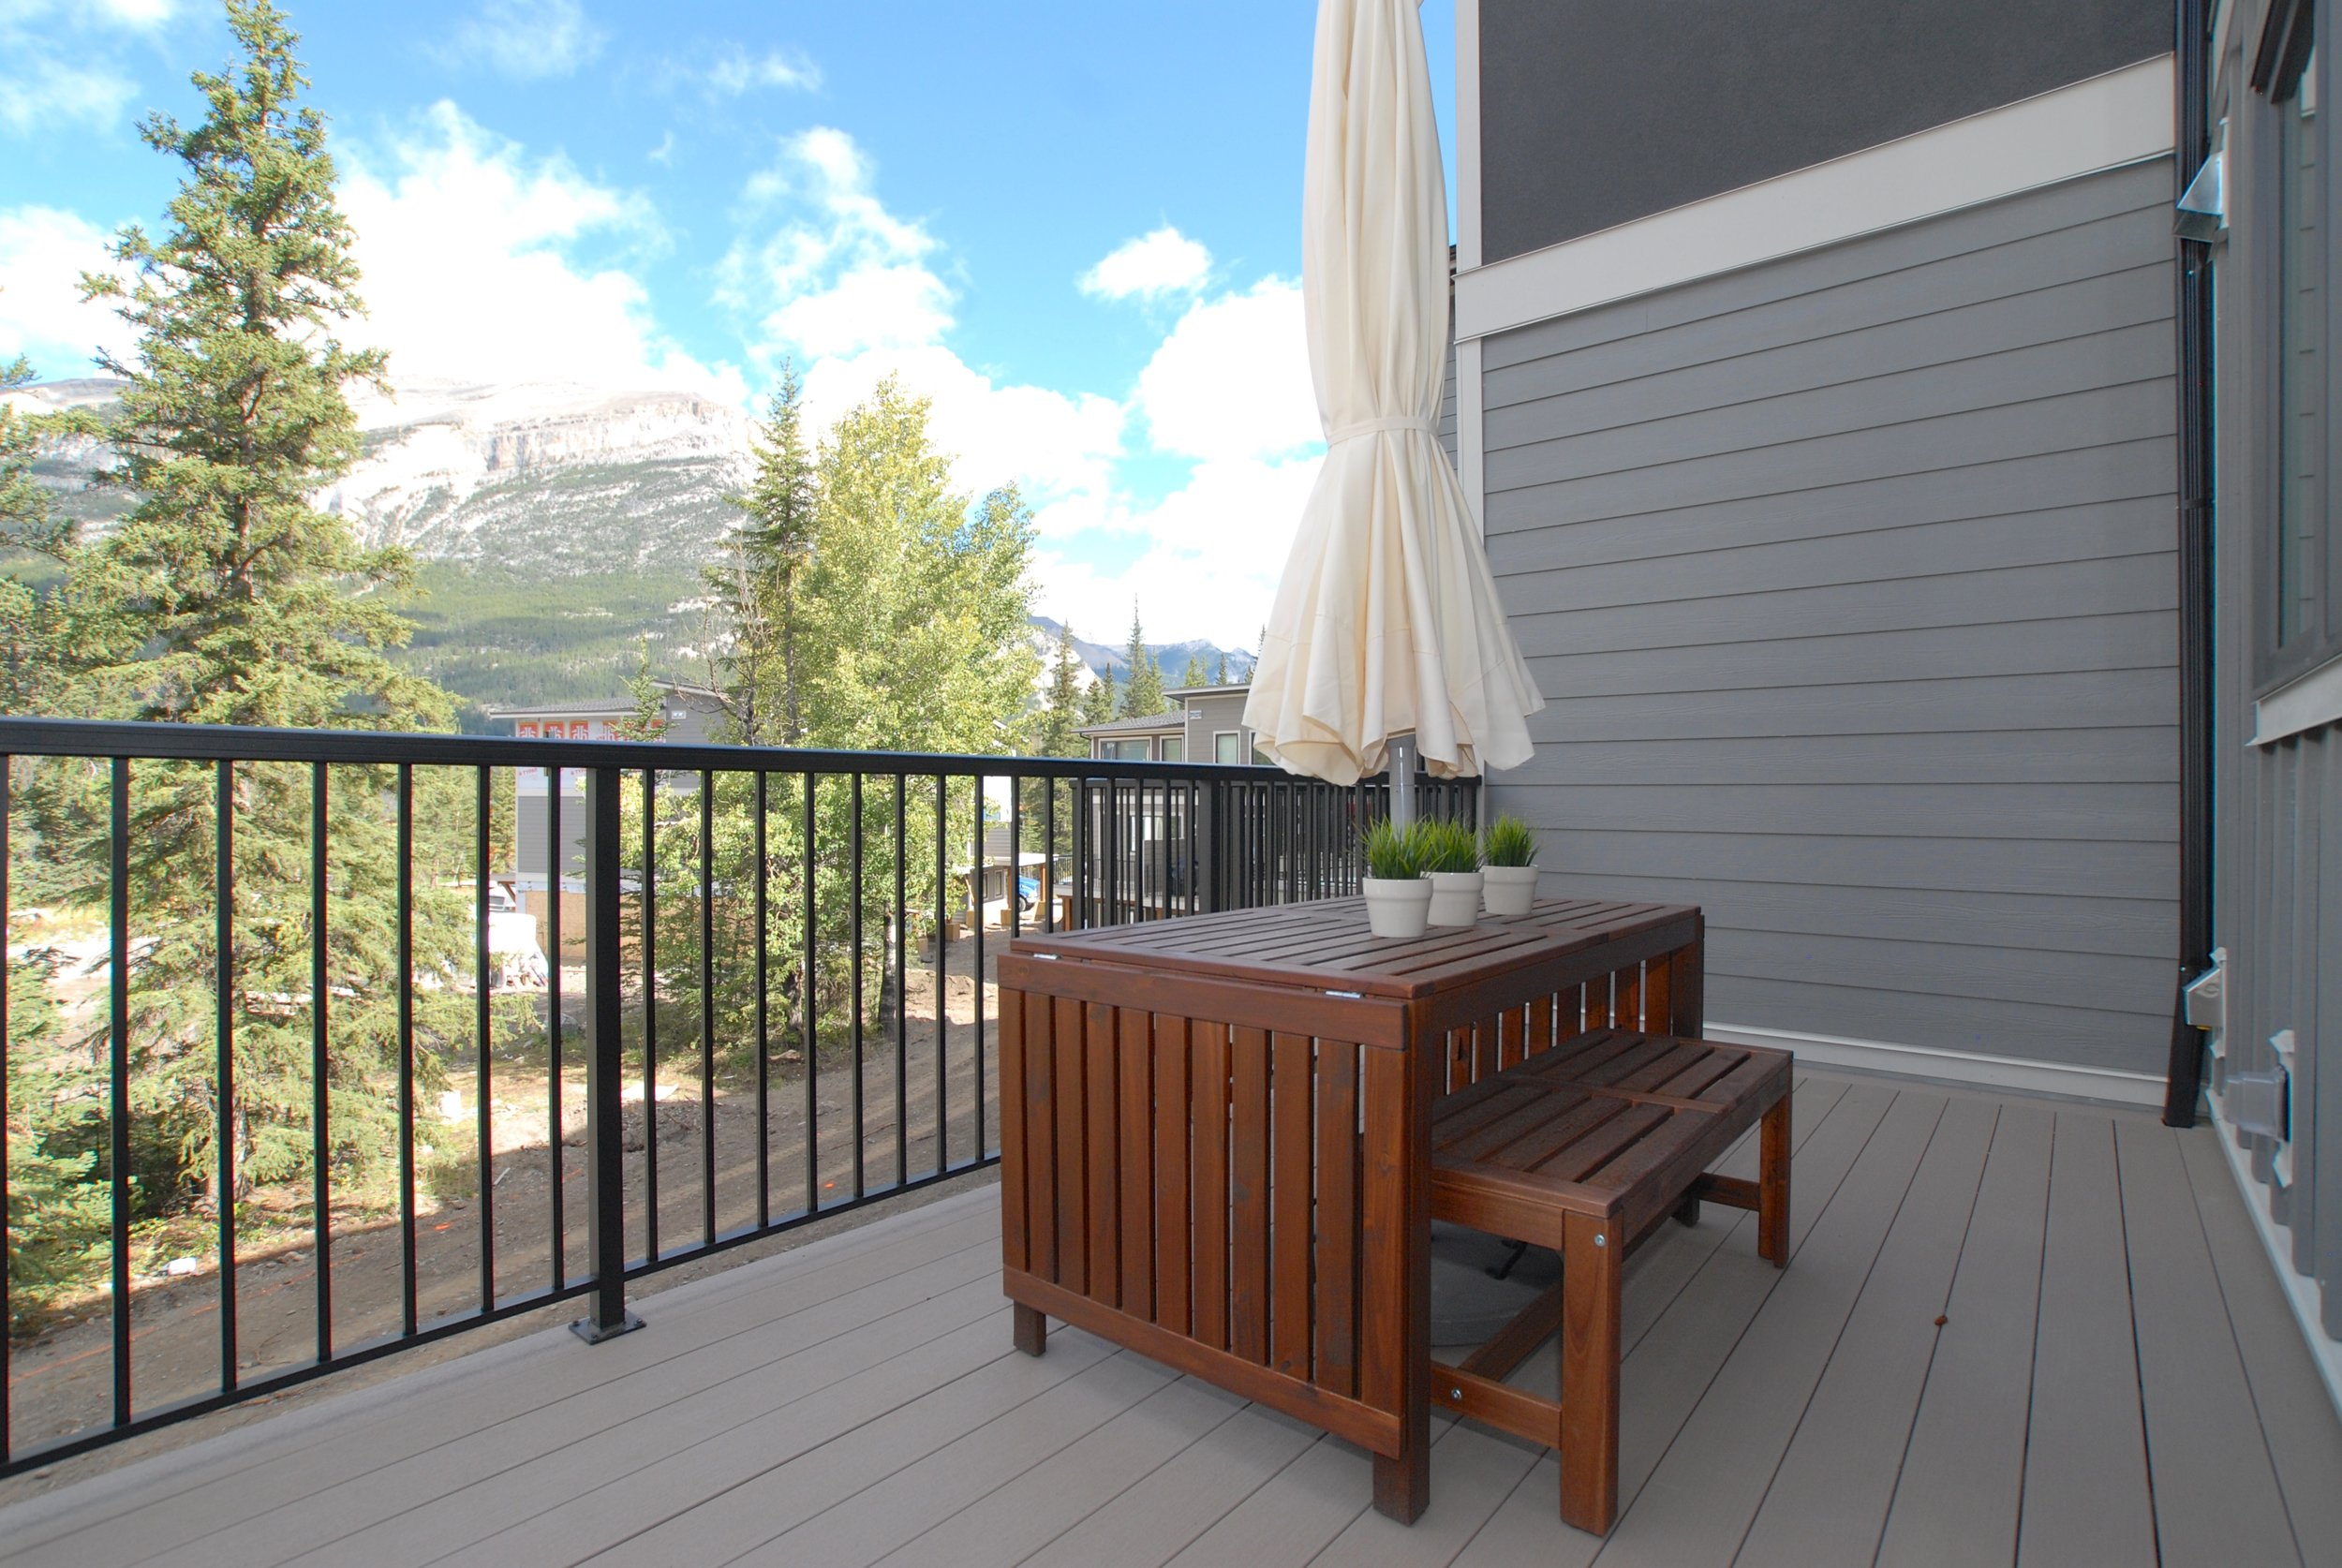 Low maintenance back deck with views